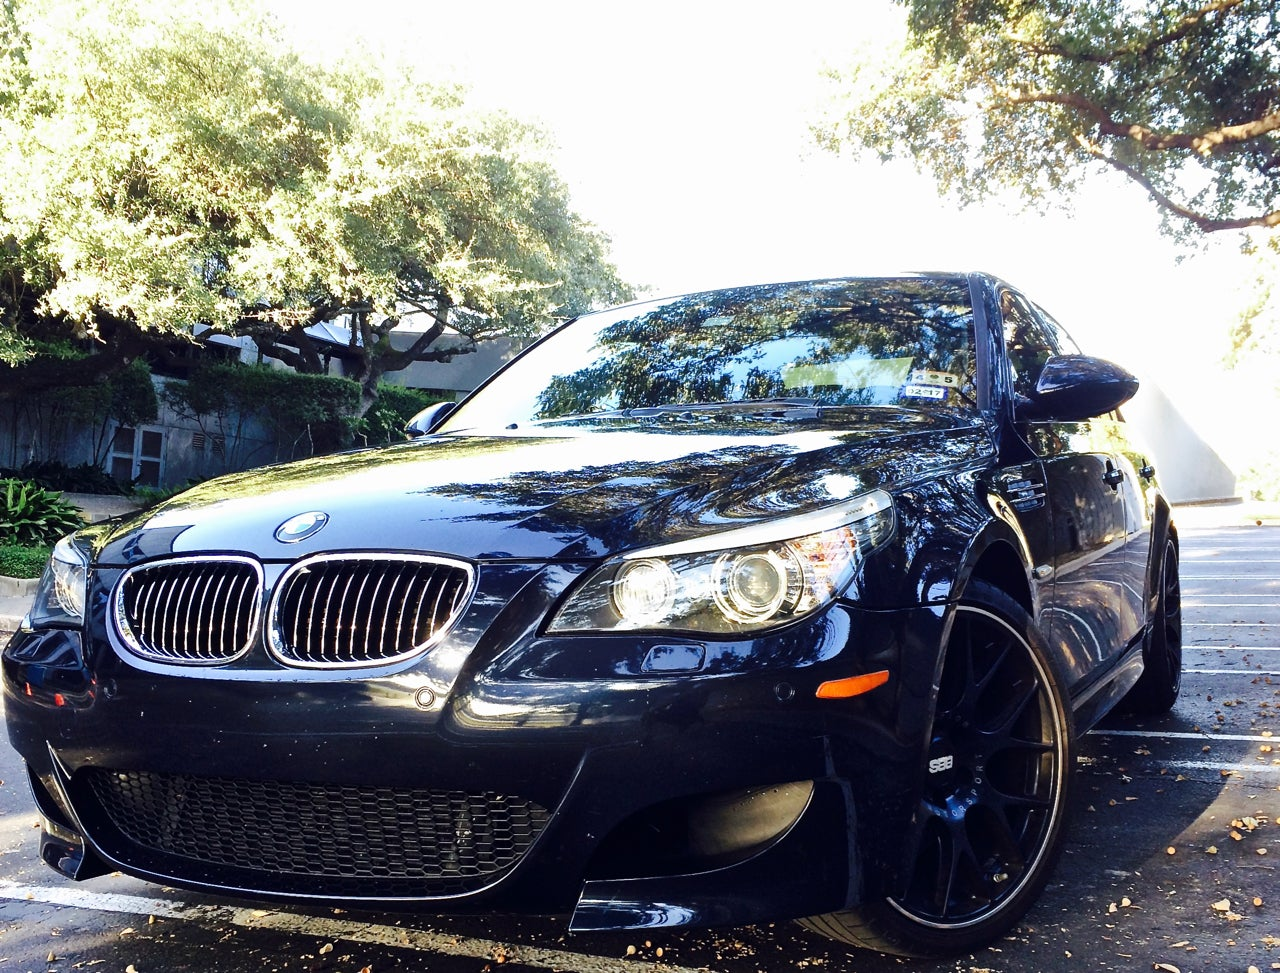 what it s really like to own and operate a v10 bmw m5 every day rh jalopnik com BMW M5 Manual F80 BMW M5 Manual Transmission